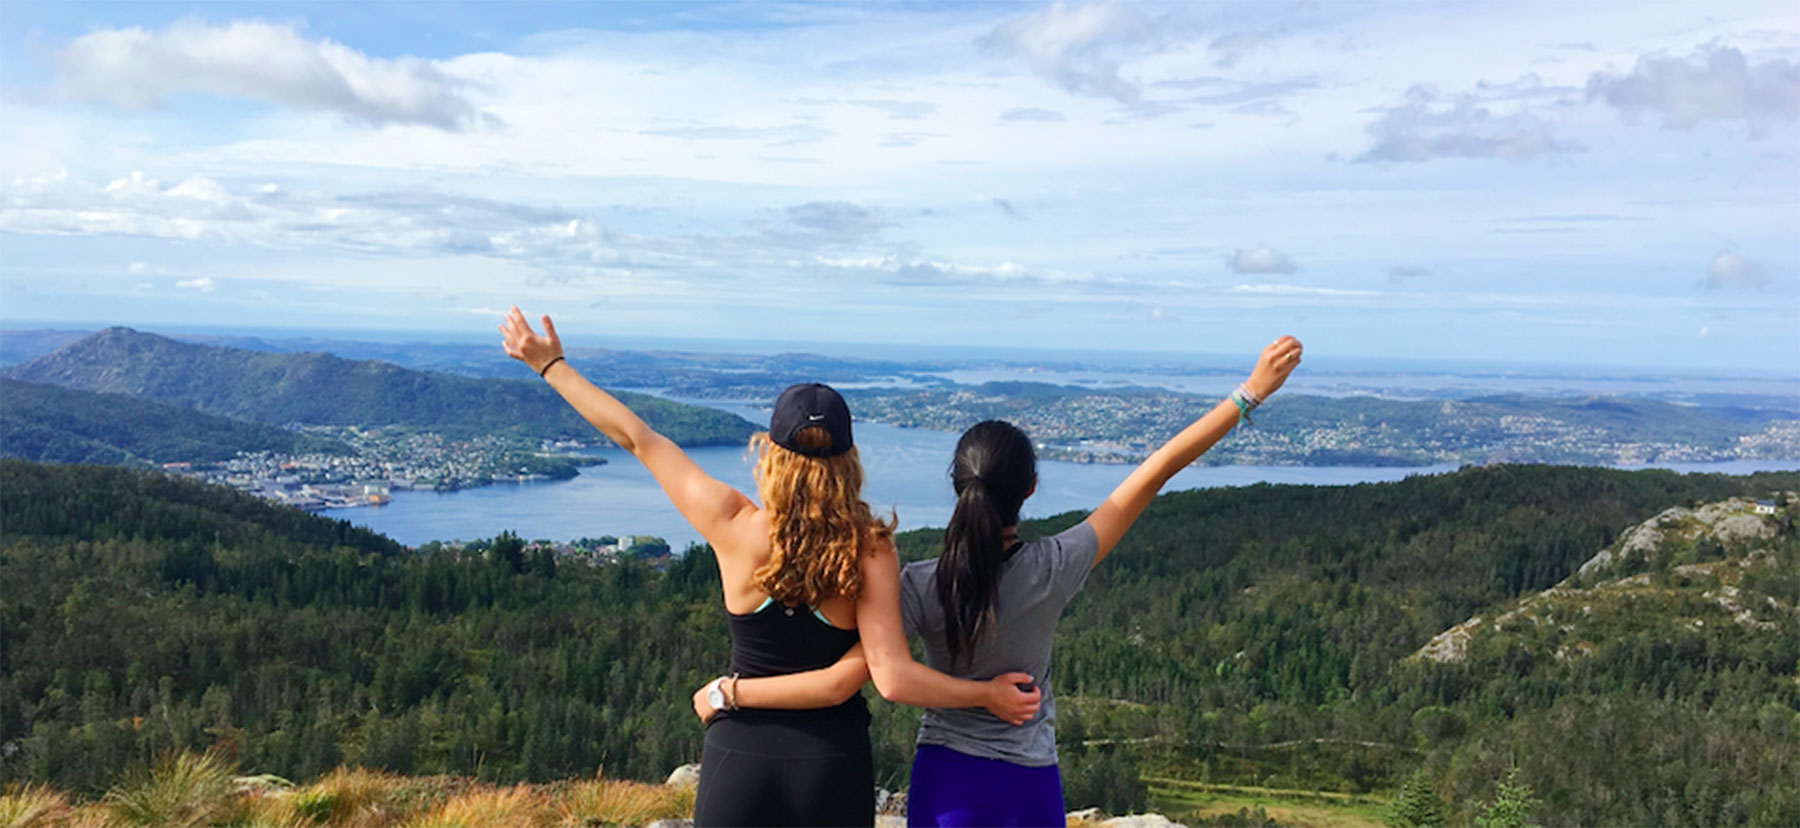 Two women stand with their arms raised, backs to the camera, with Fjords spread out in front of them